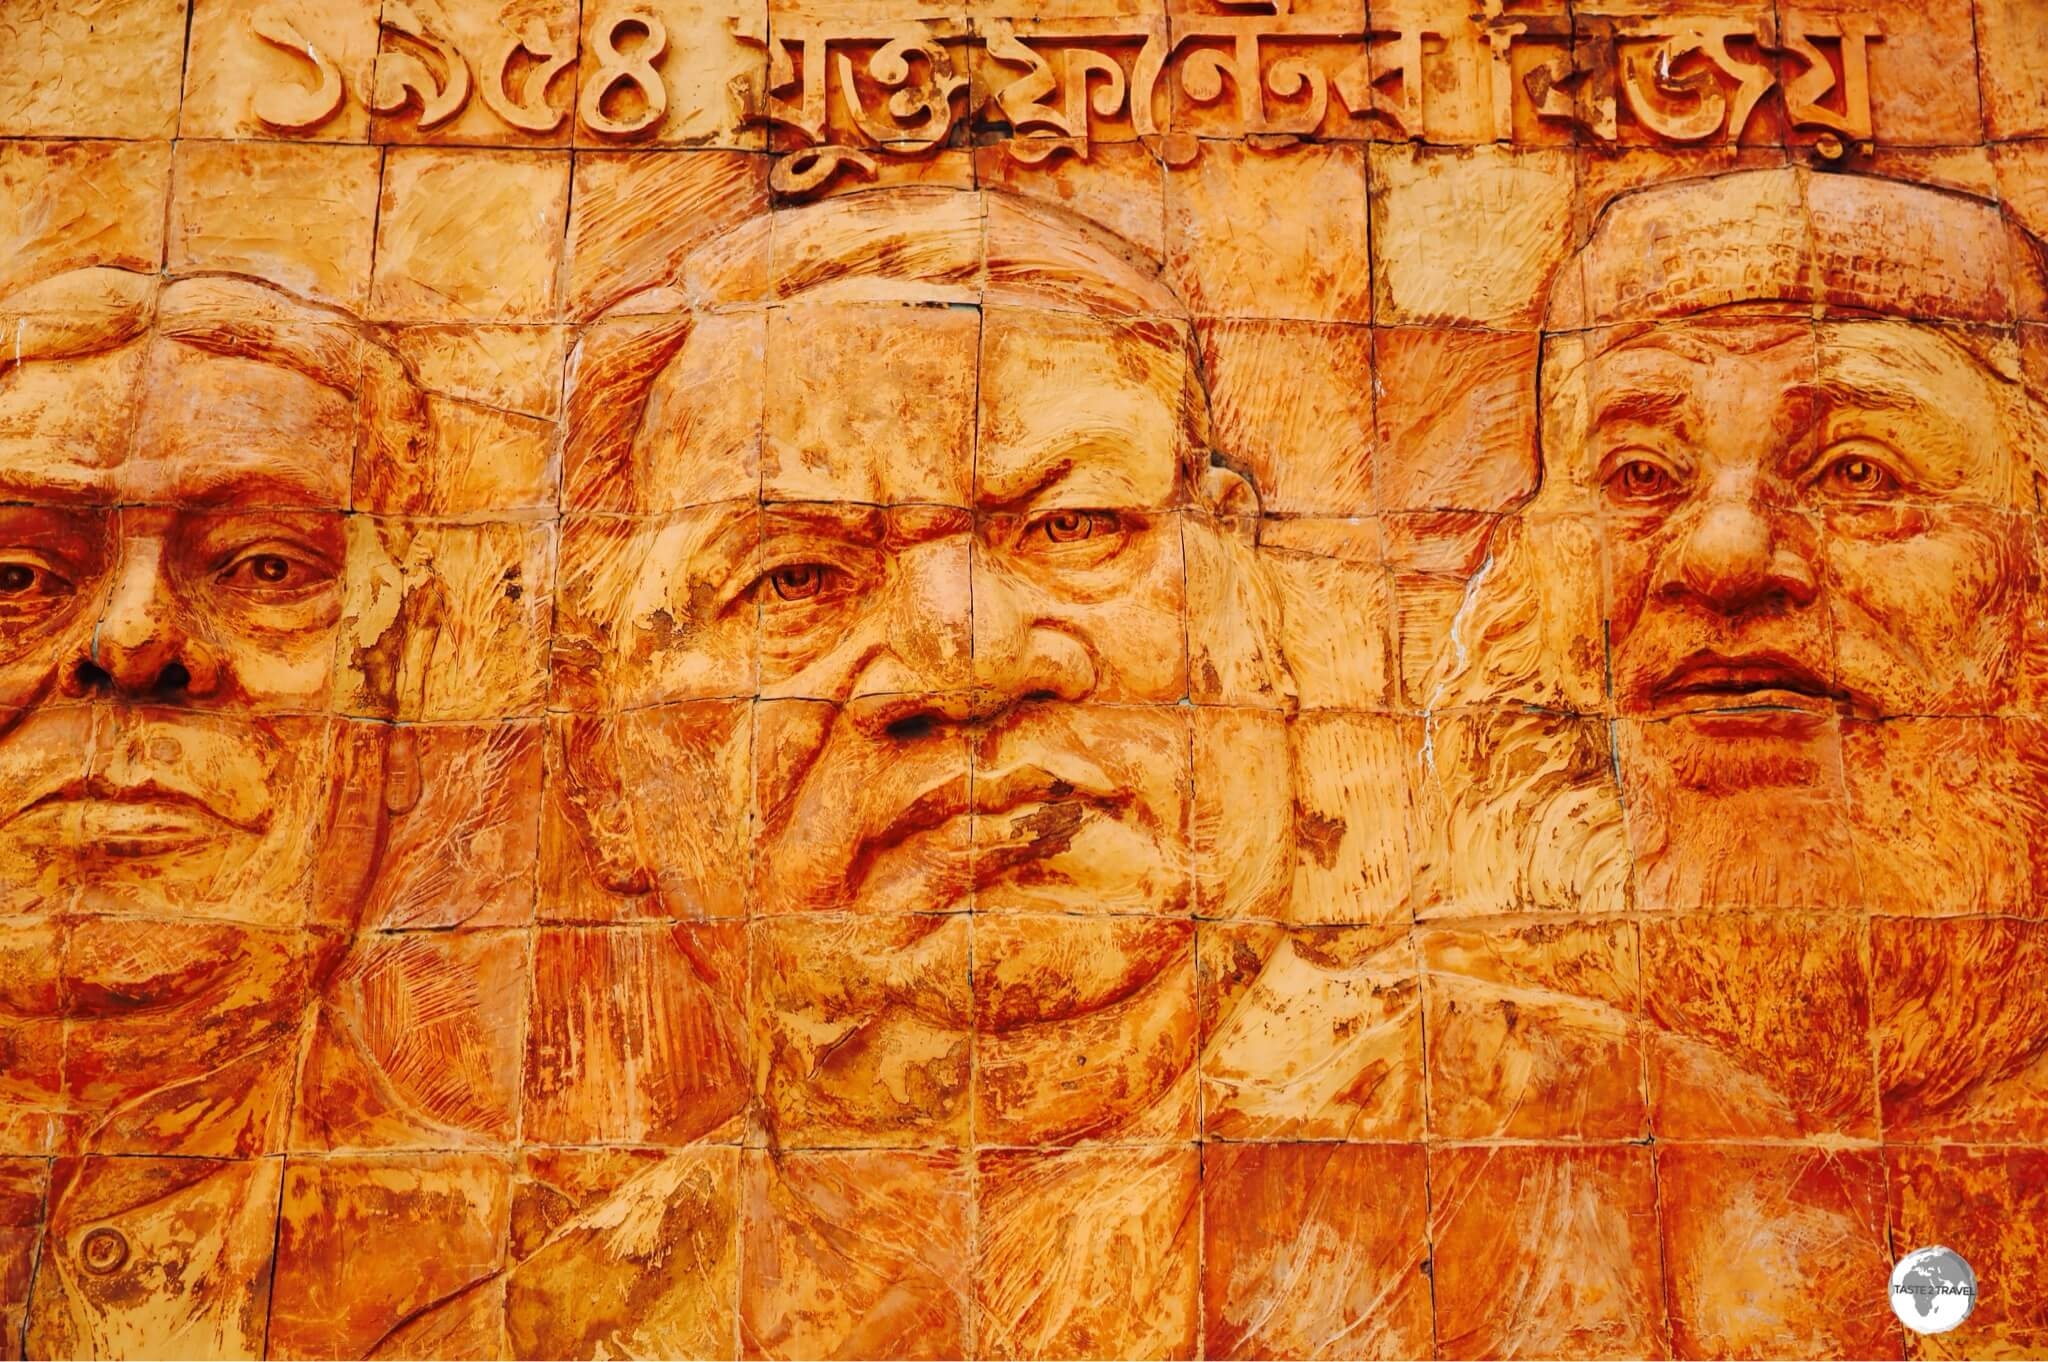 Terracotta panels at the entrance to the Independence museum feature Sheikh Mujibur Rahman, the founding father of Independent Bangladesh.